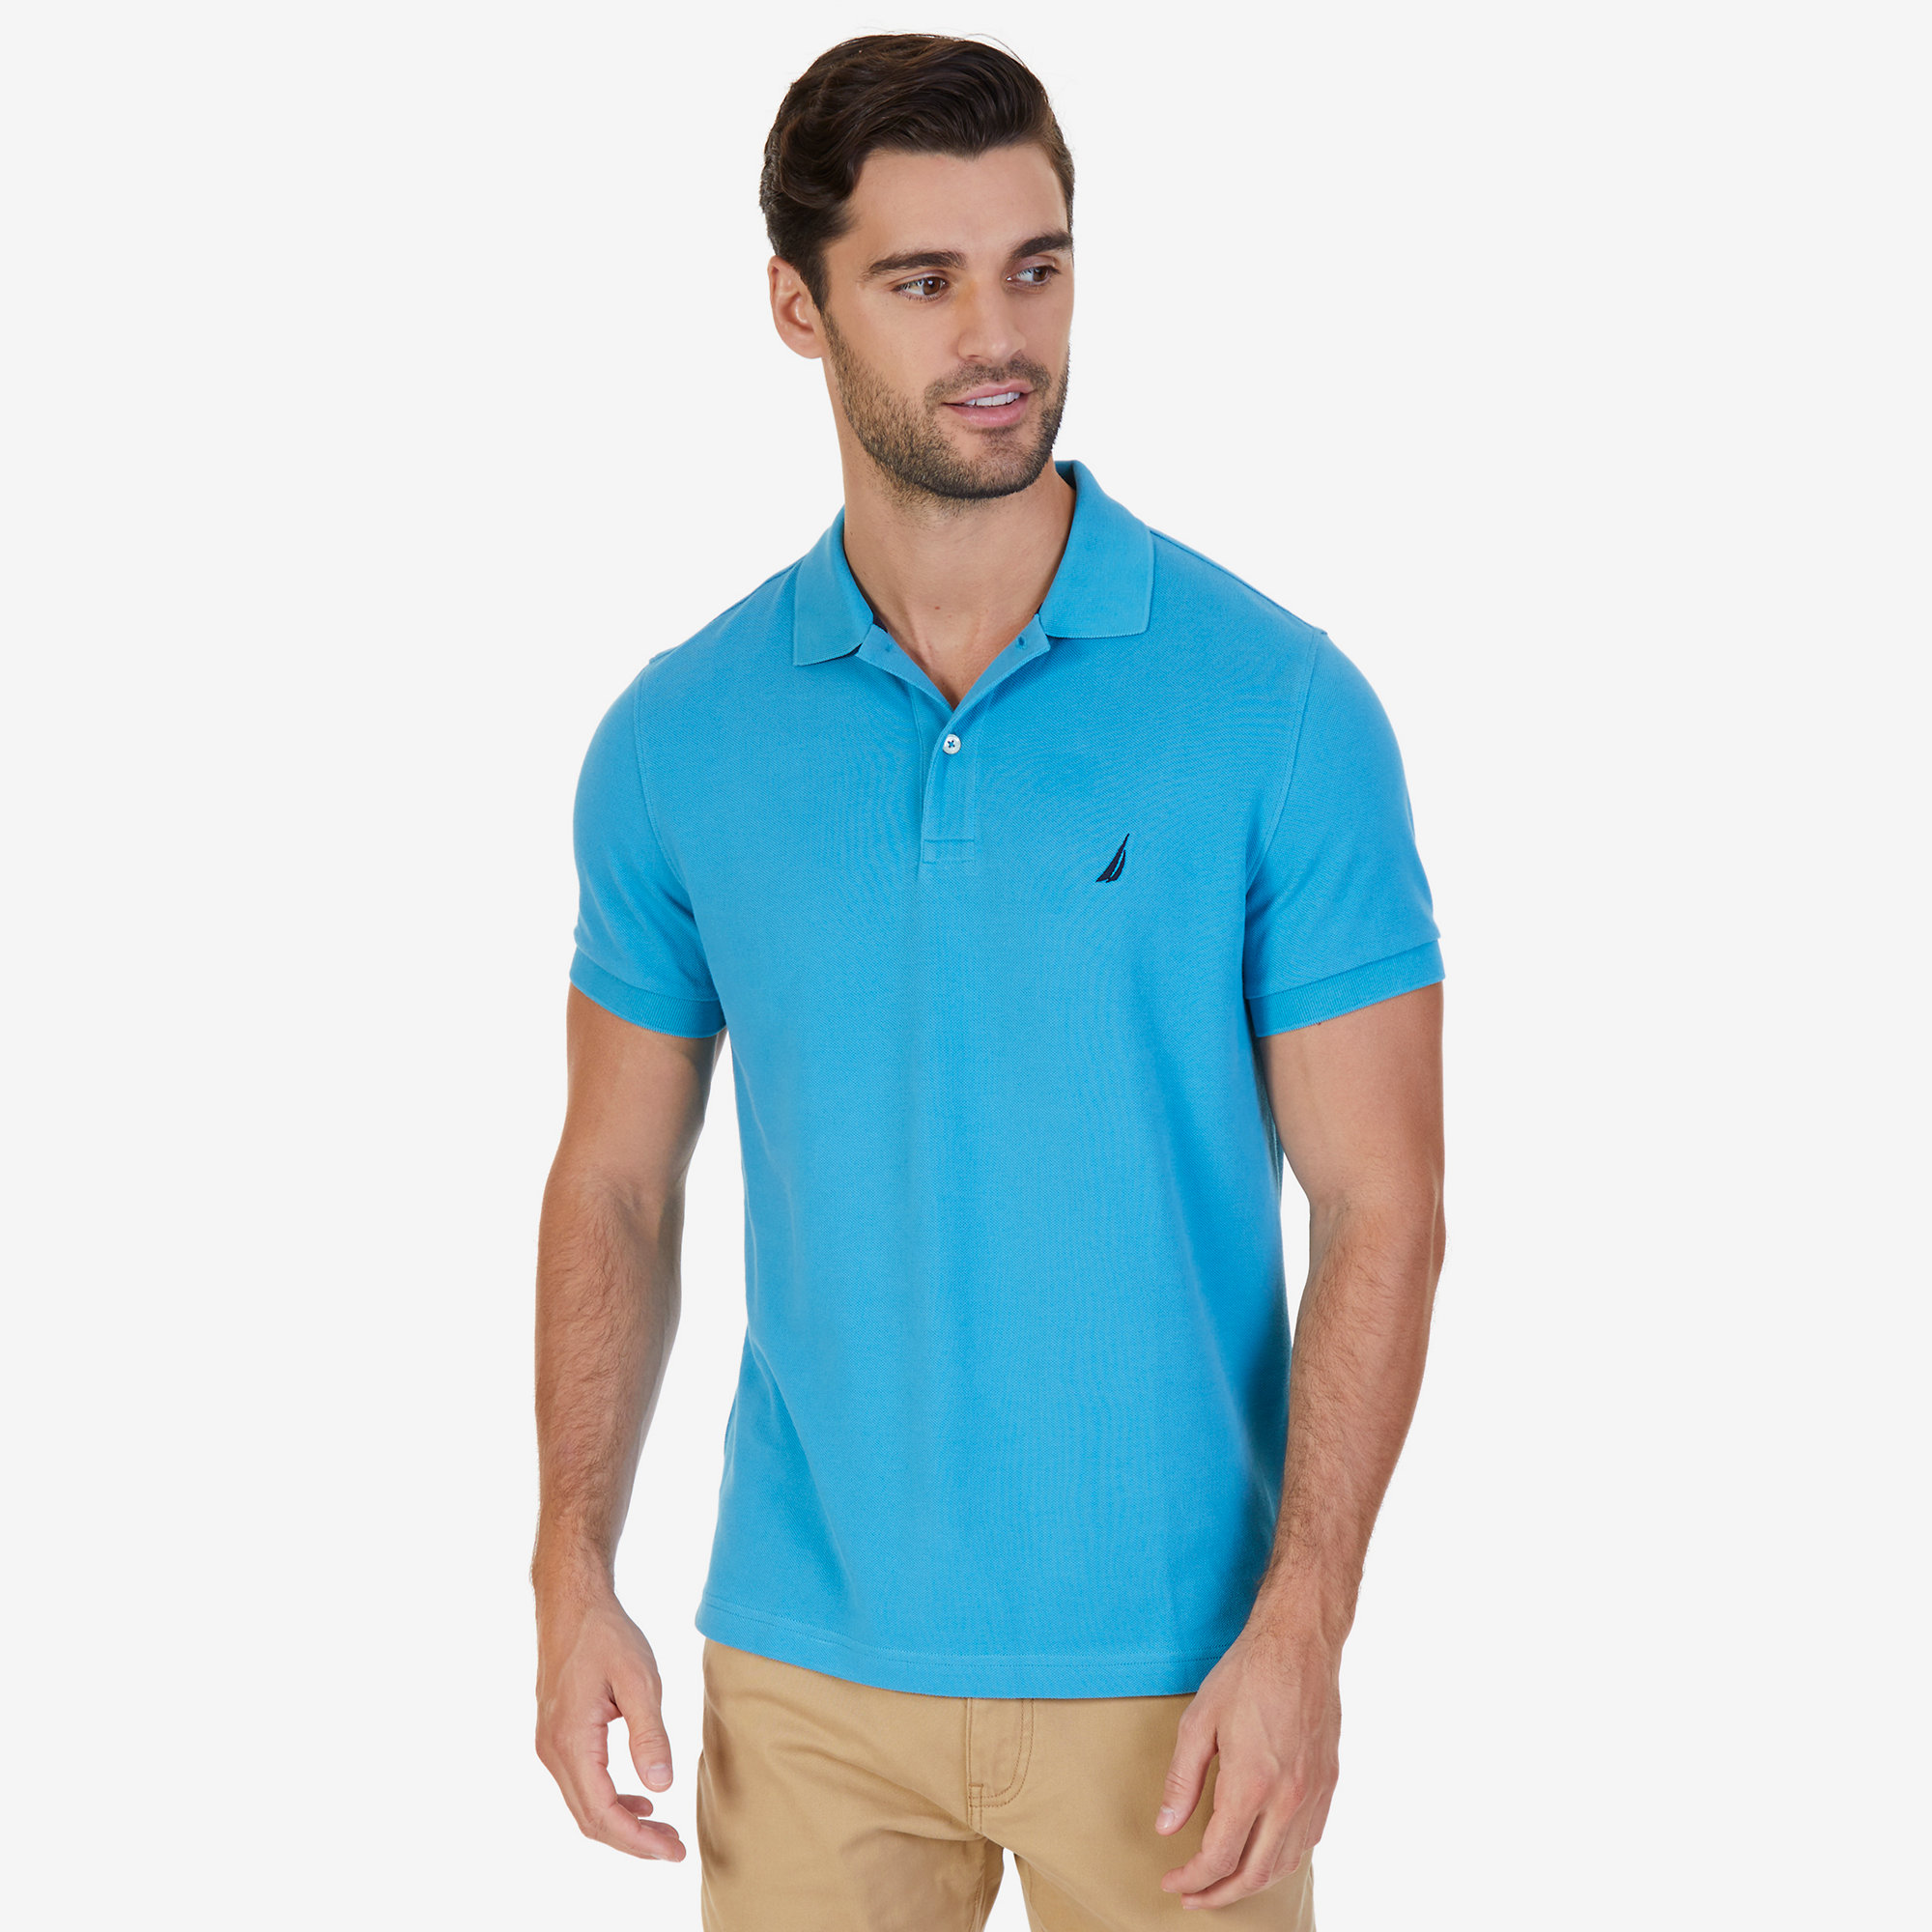 Nautica mens slim fit deck polo shirt picclick for Men slim fit shirts